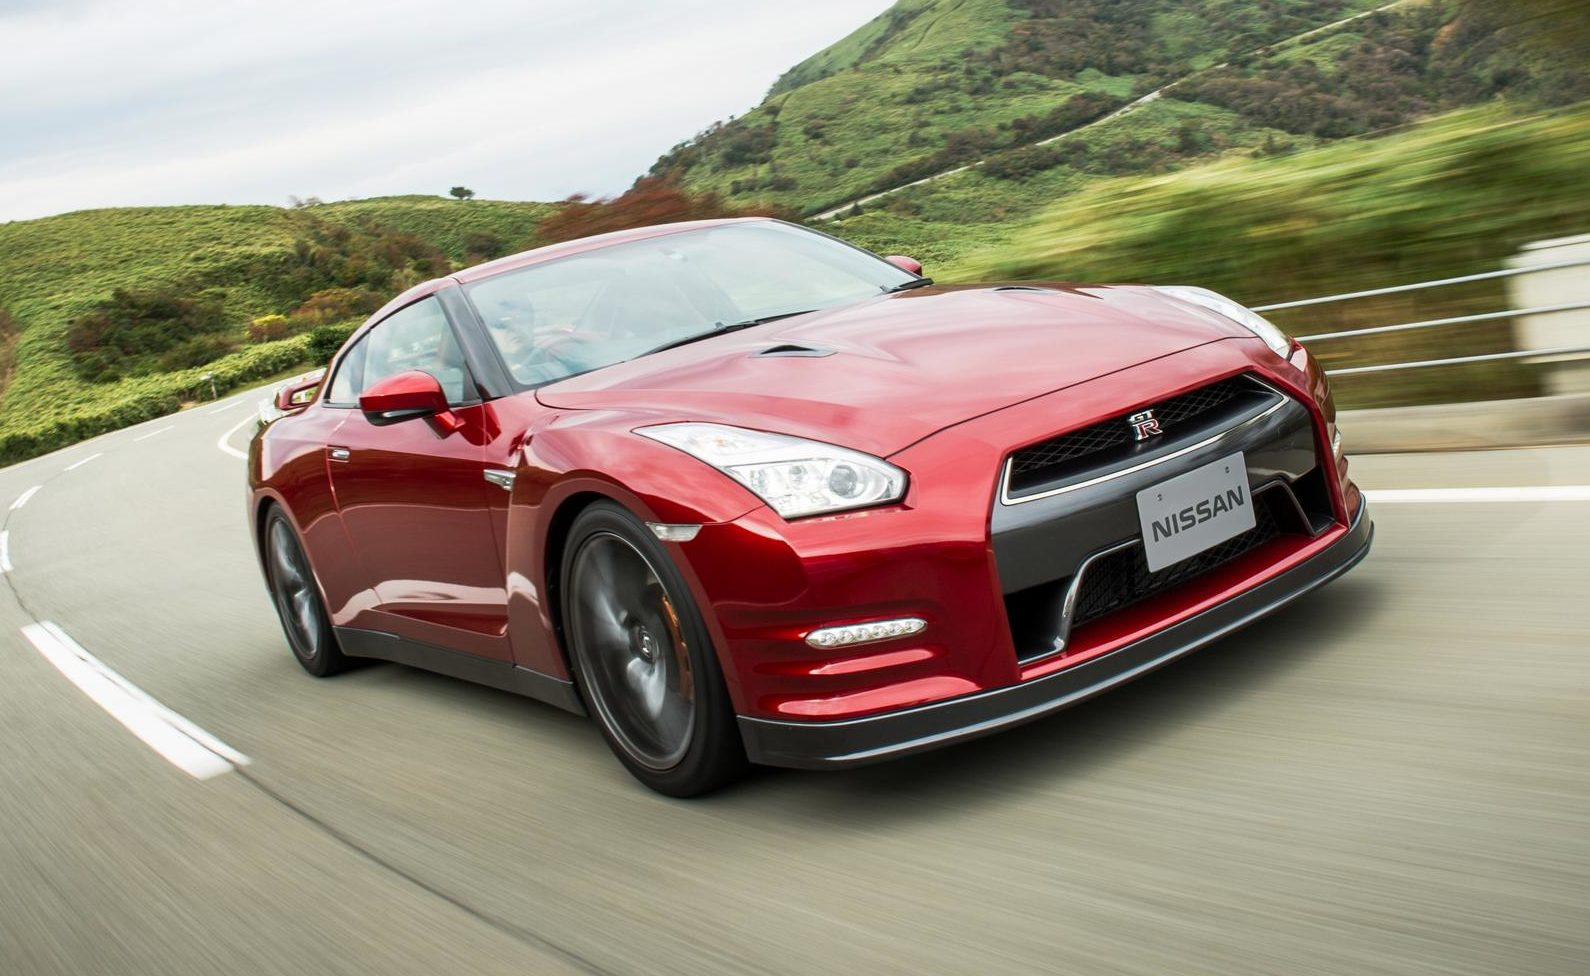 Rise and Fall of the Godzilla: Nissan GT-R and its Dimming Popularity